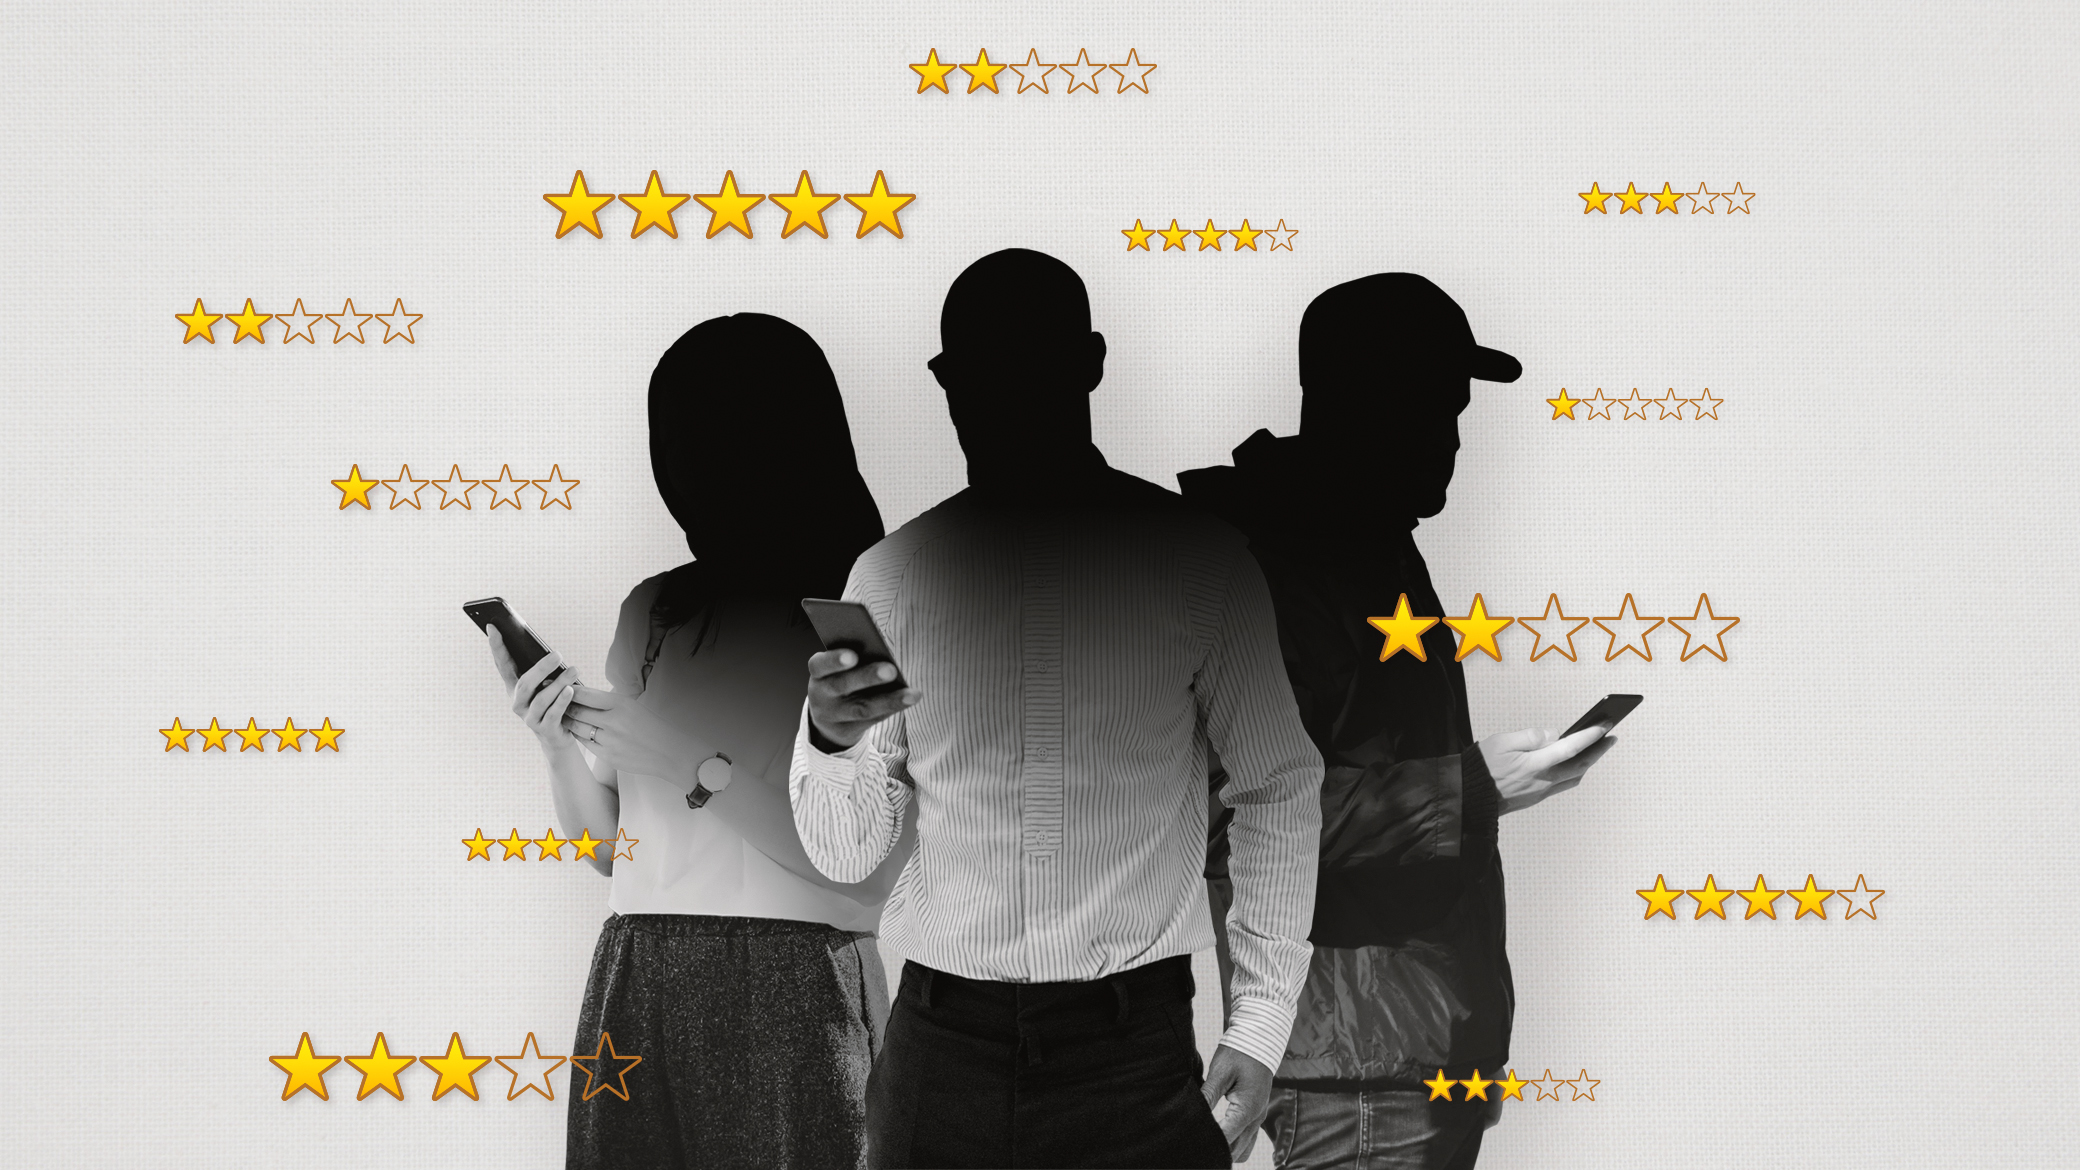 Three anonymous figures on their phones with Amazon product star ratings surrounding them.